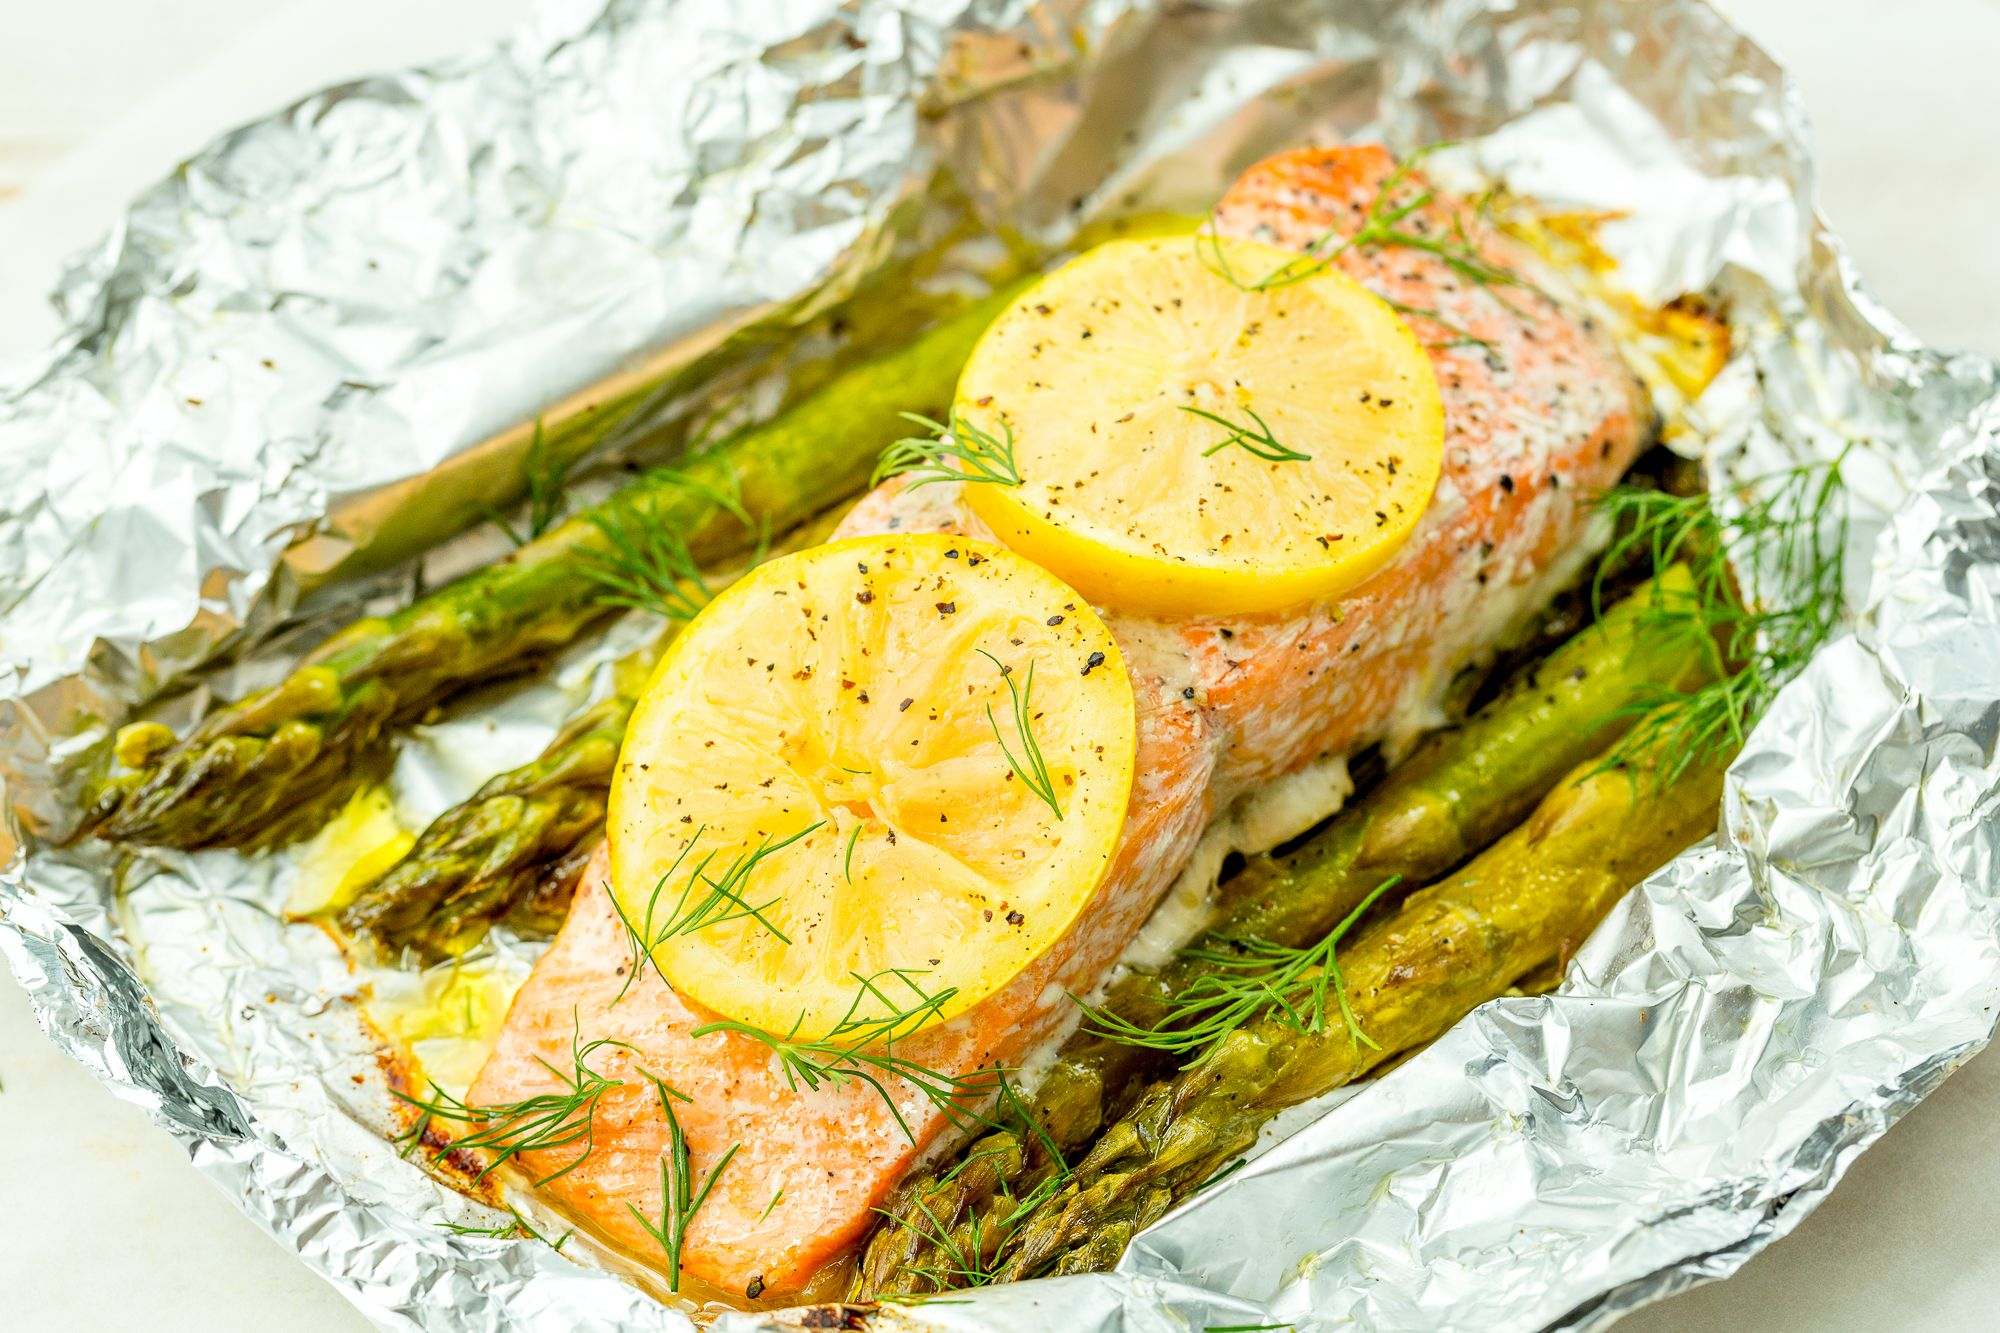 Best Grilled Salmon In Foil Recipe How To Grill Salmon Foil Packets With Asparagus Delish Com